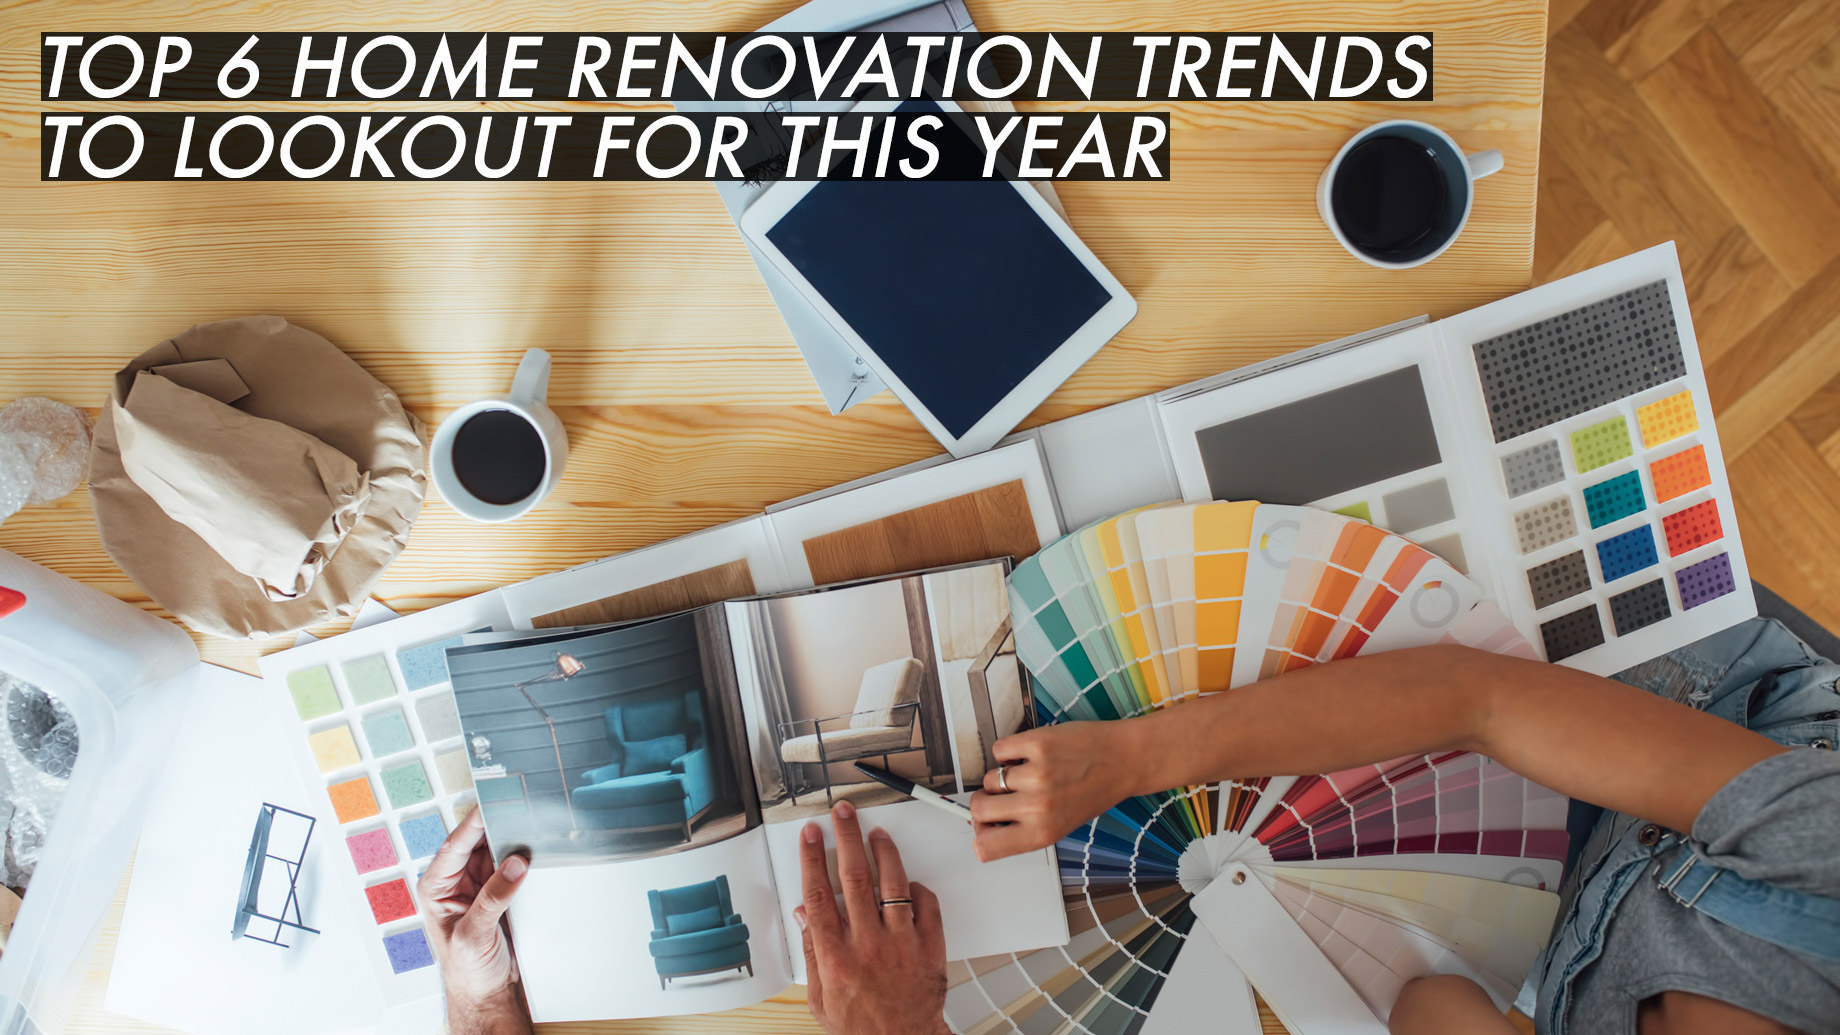 Top 6 Home Renovation Trends To Lookout For This Year